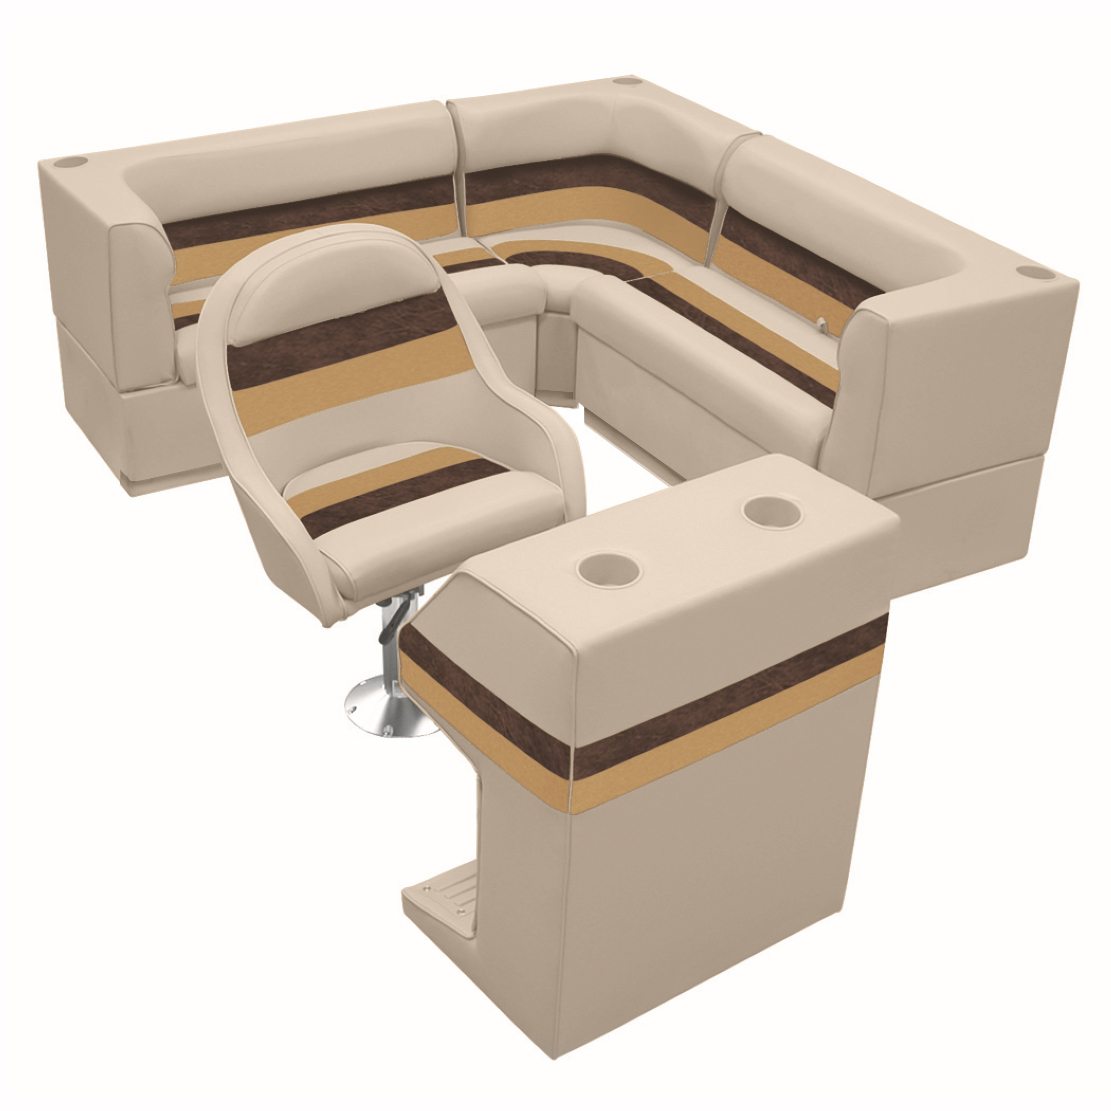 Deluxe Pontoon Furniture w/Toe Kick Base - Rear Group 4 Package, Sand/Chest/Gold